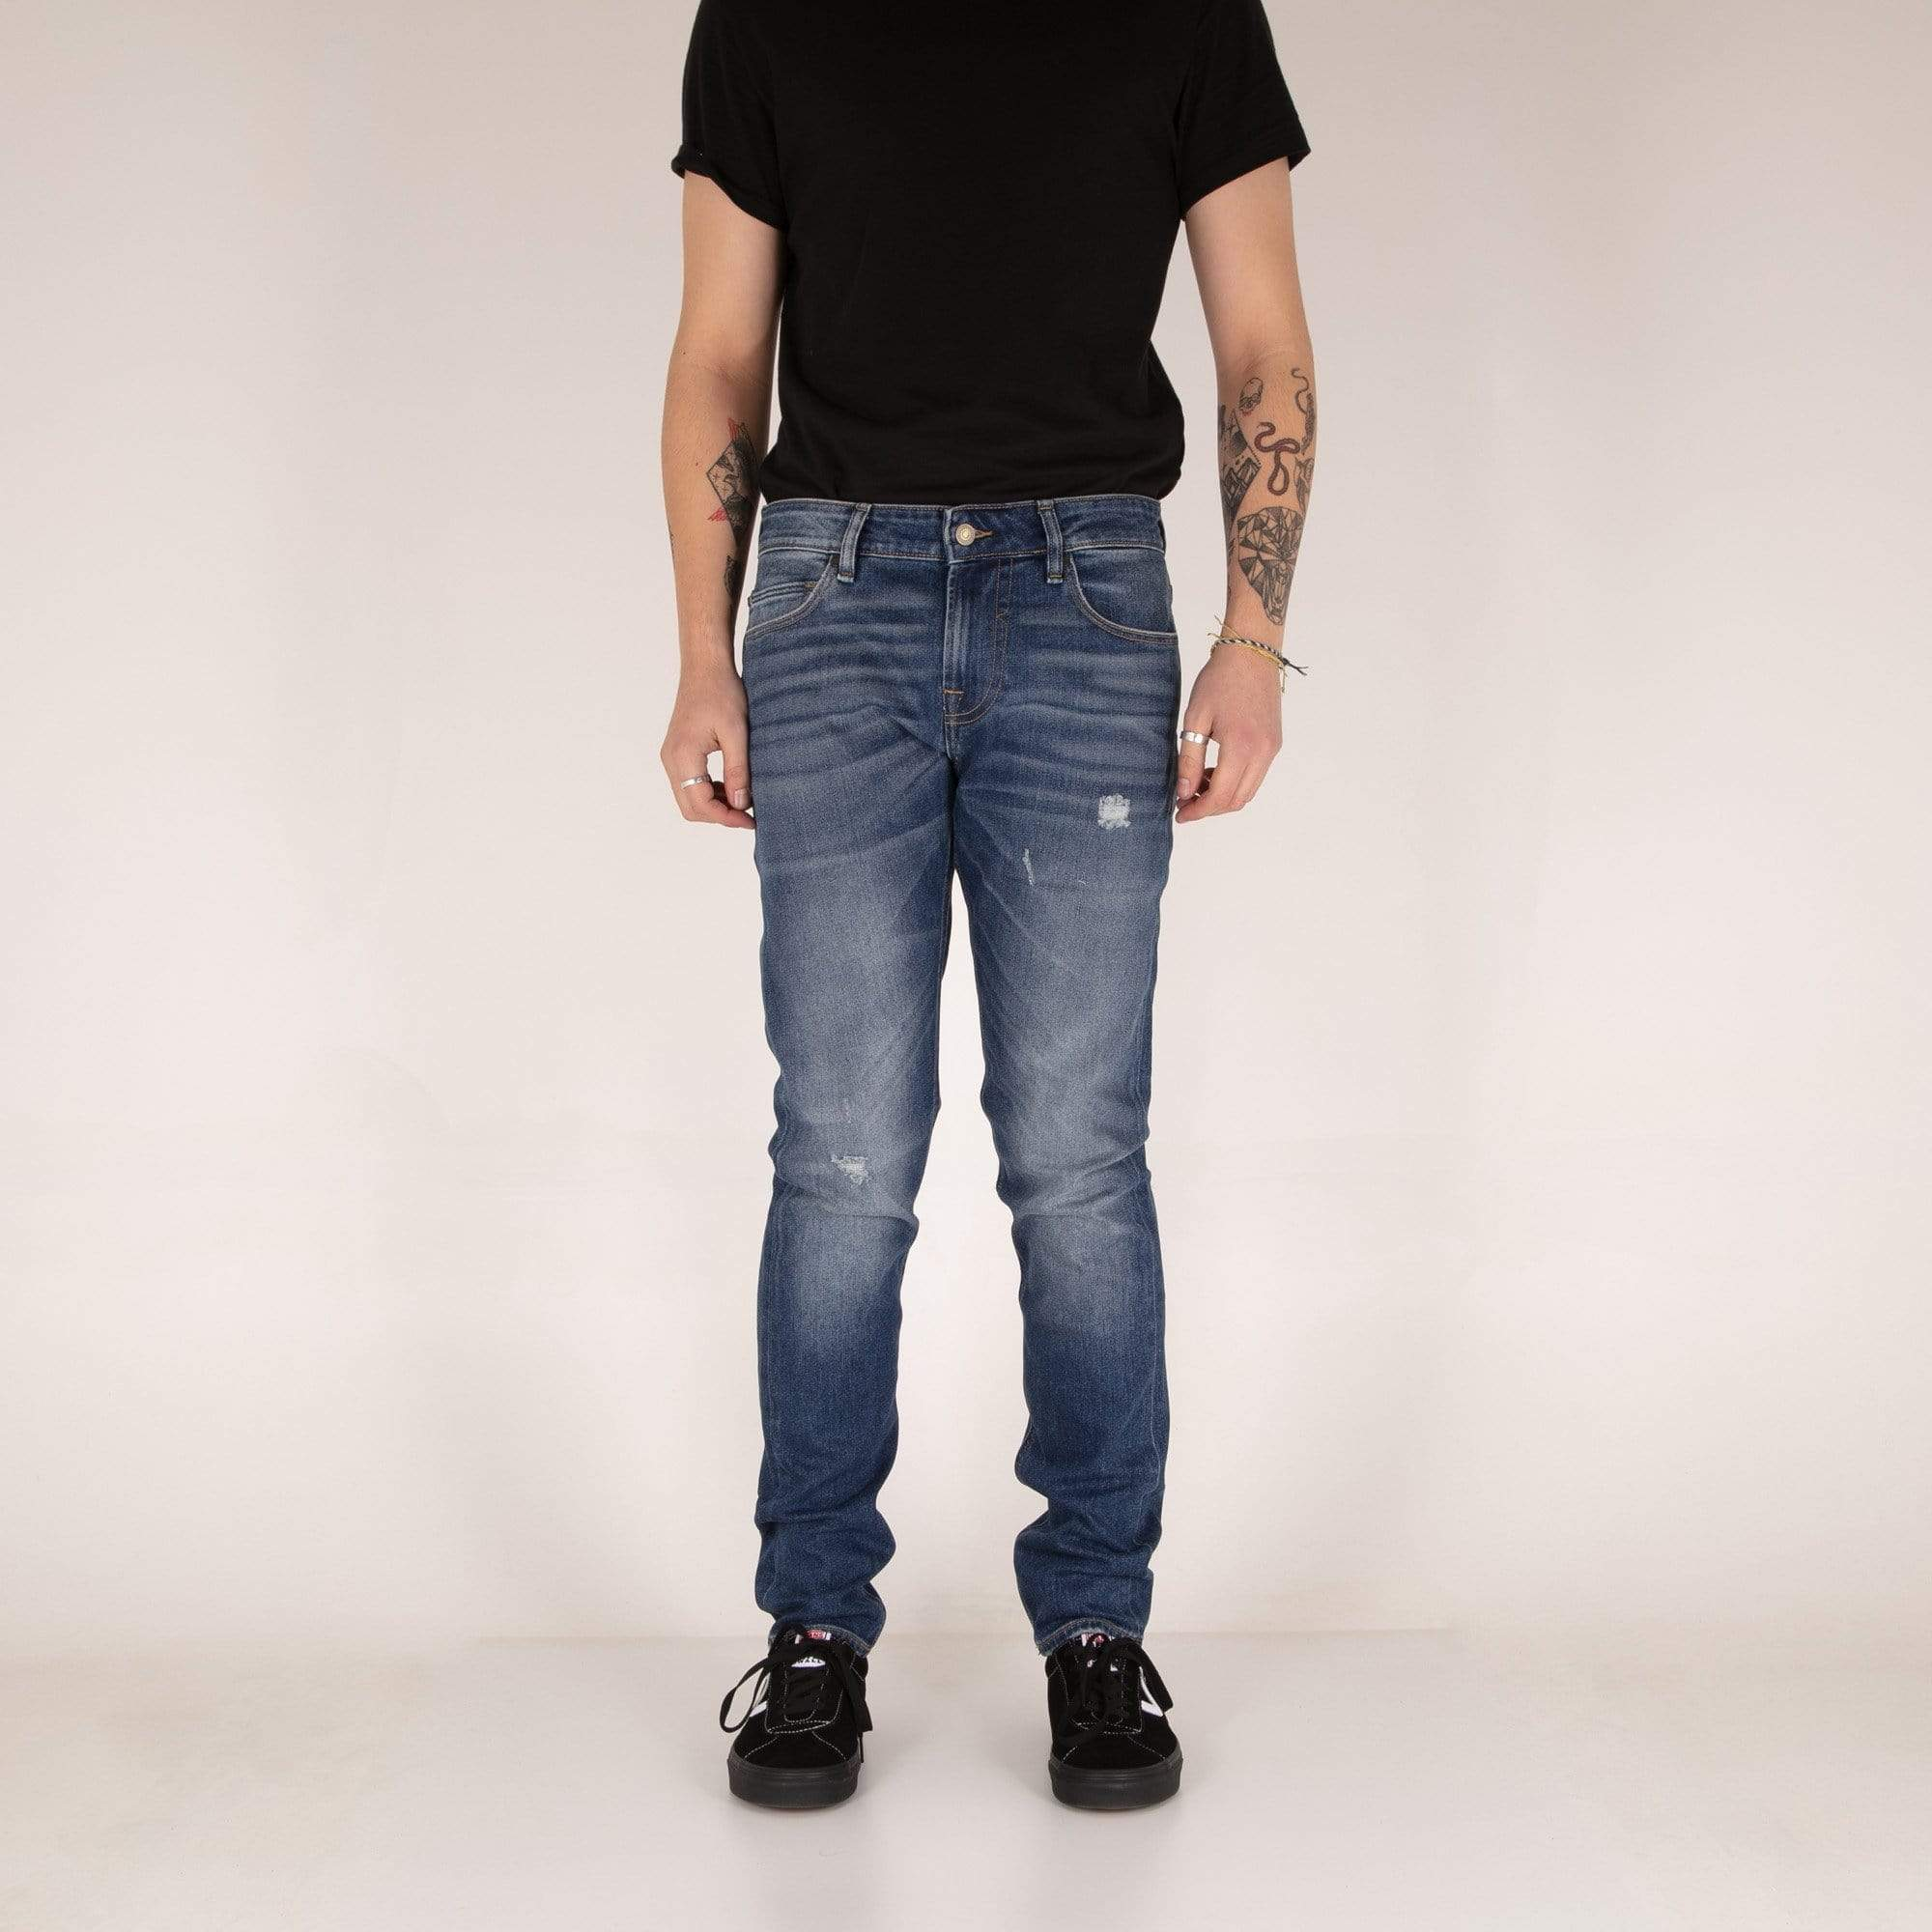 Guess Chris Skin Tight Mens Jeans - Langford / Mid Blue Used W30 L30 M94A27D3PC130S 7613419109597 Guess Jeans